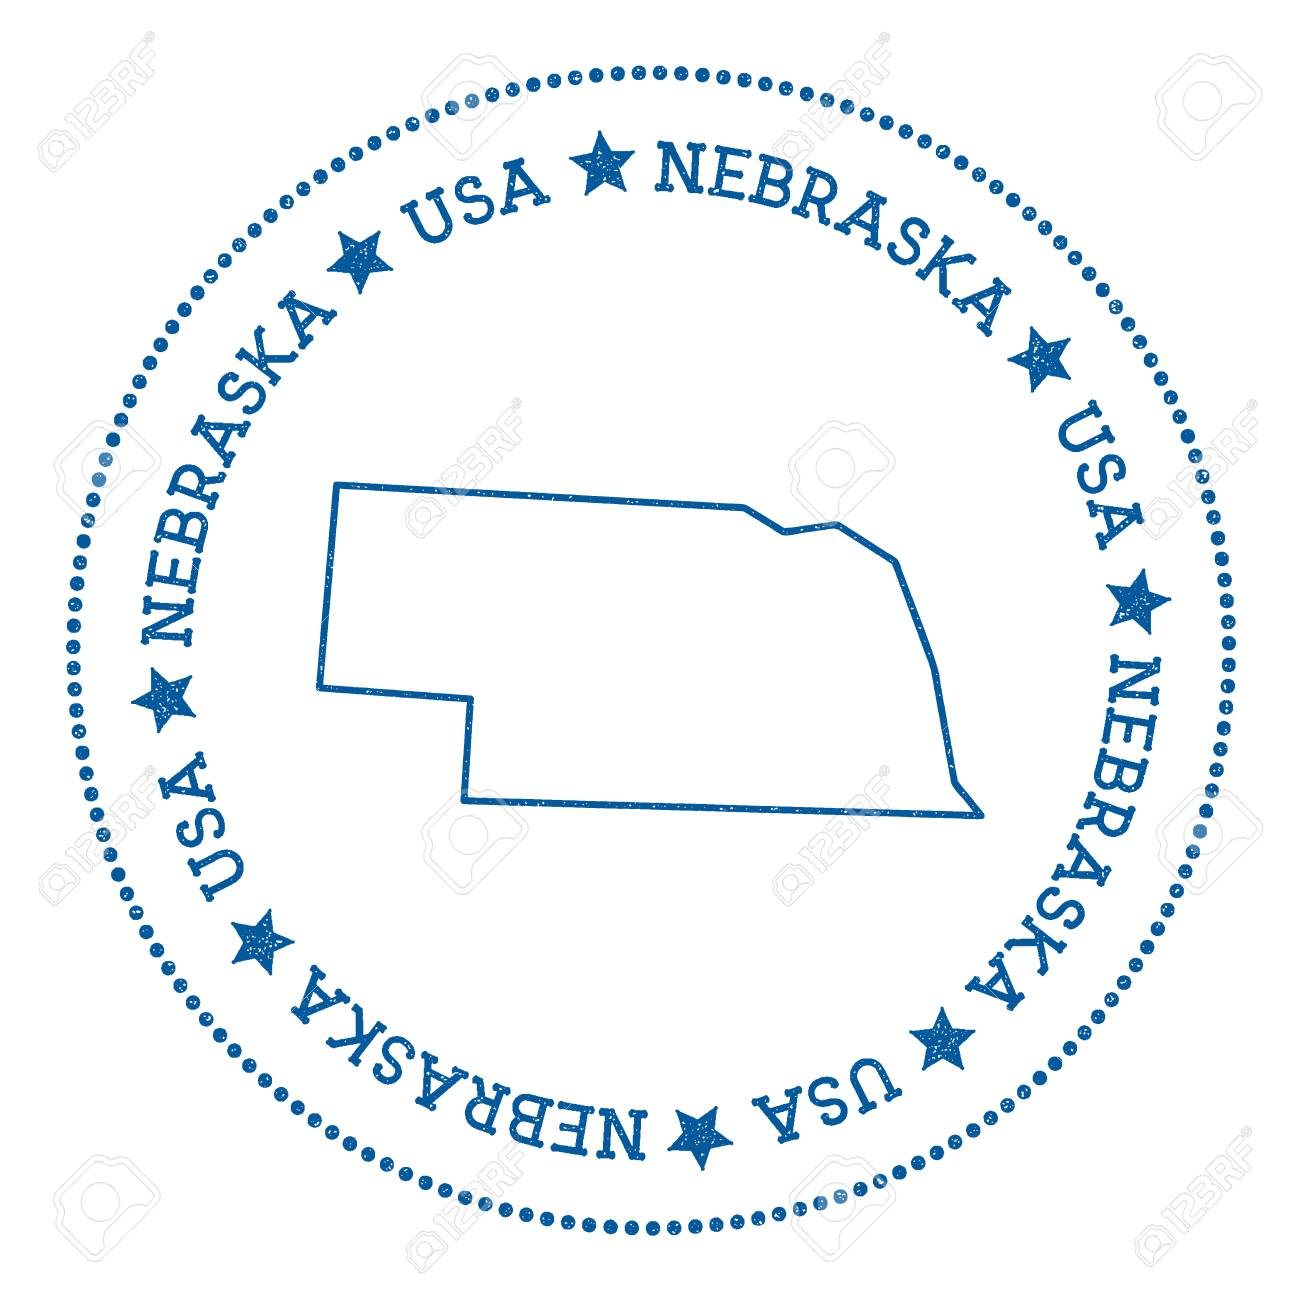 Free Nebraska Map.Nebraska Vector Map Sticker Hipster And Retro Style Badge With